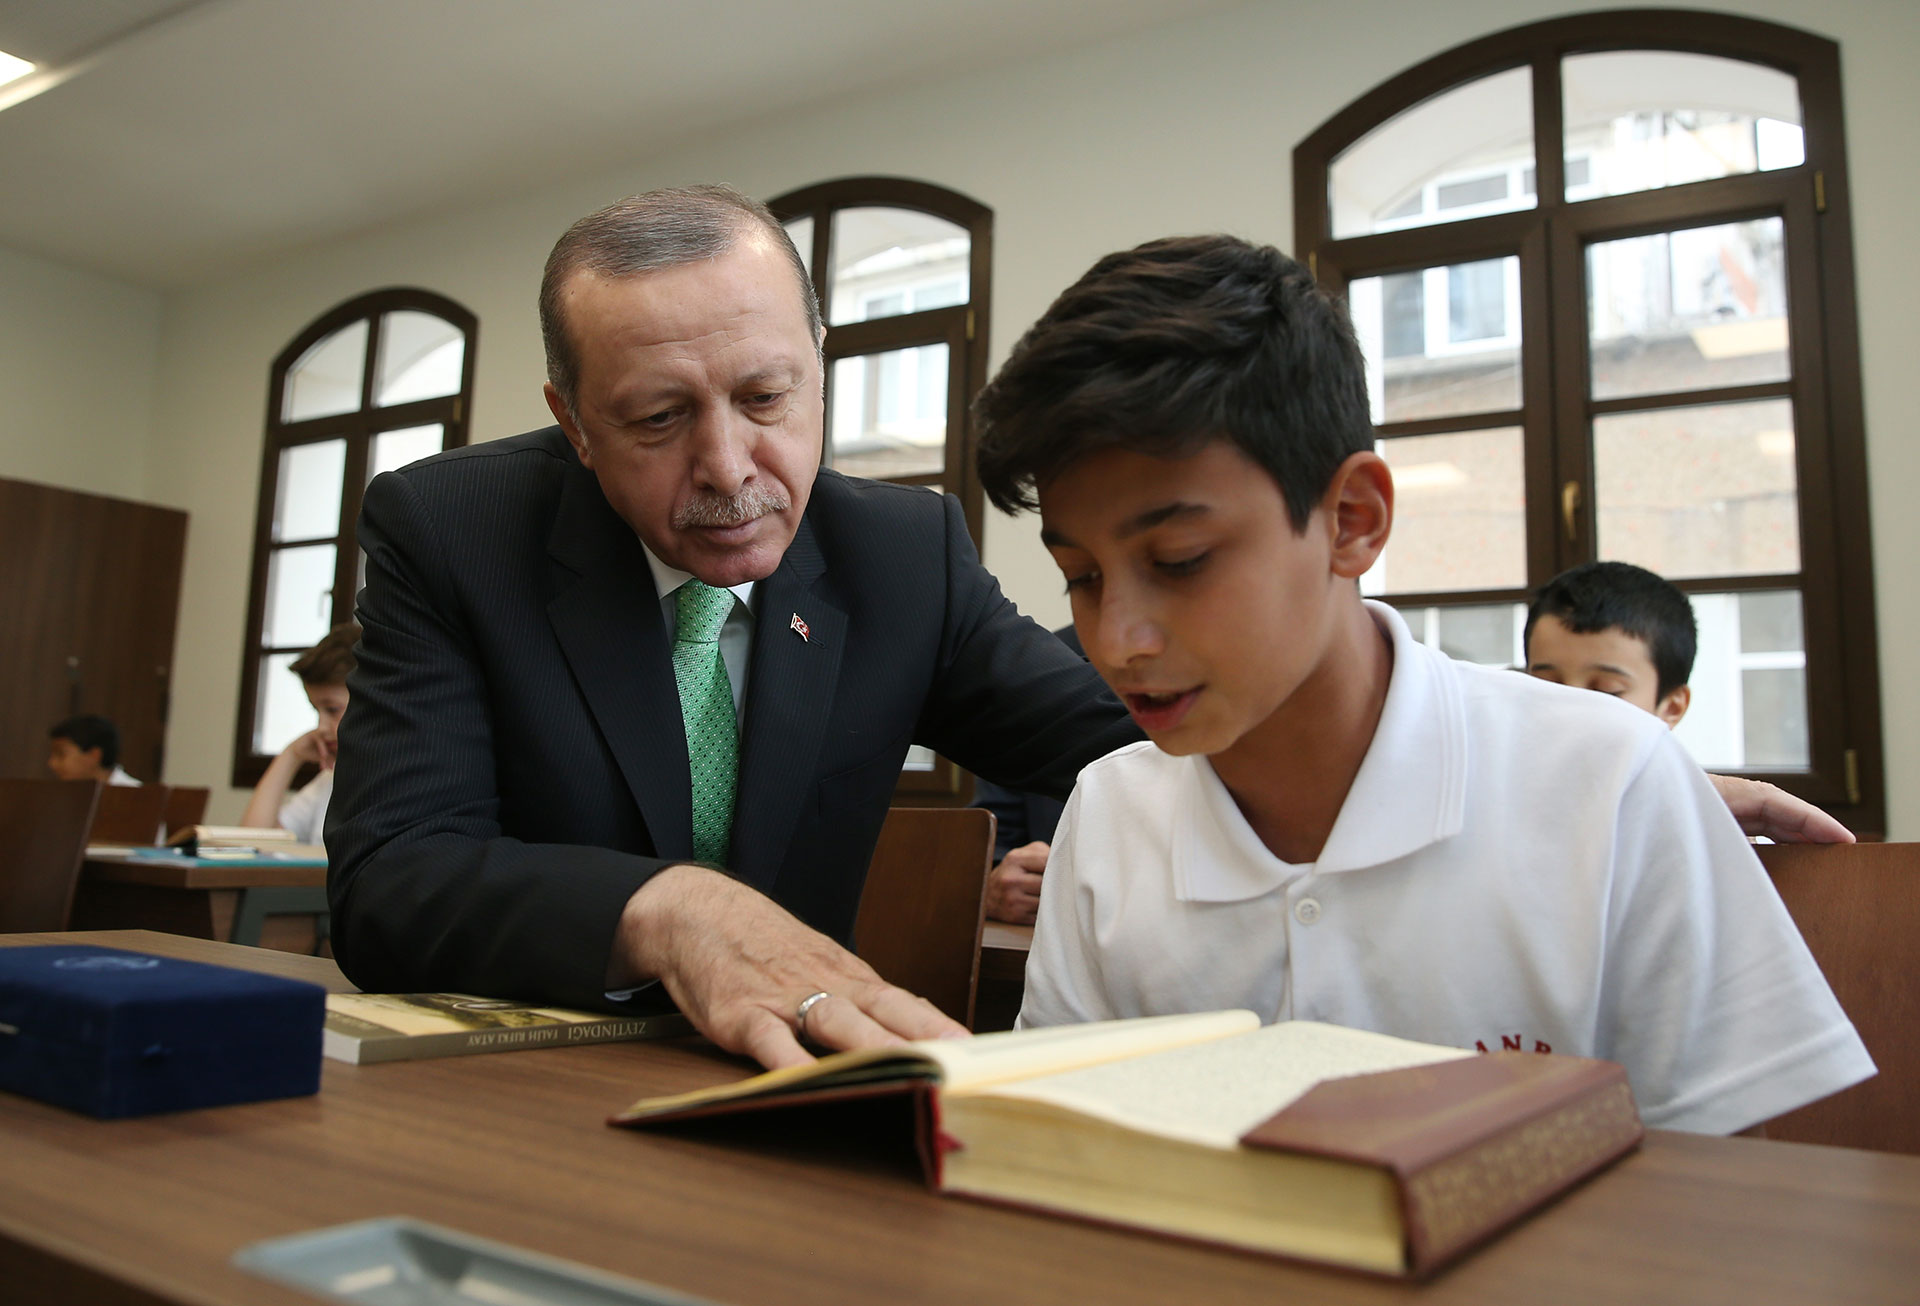 Islamic schooling in Turkey